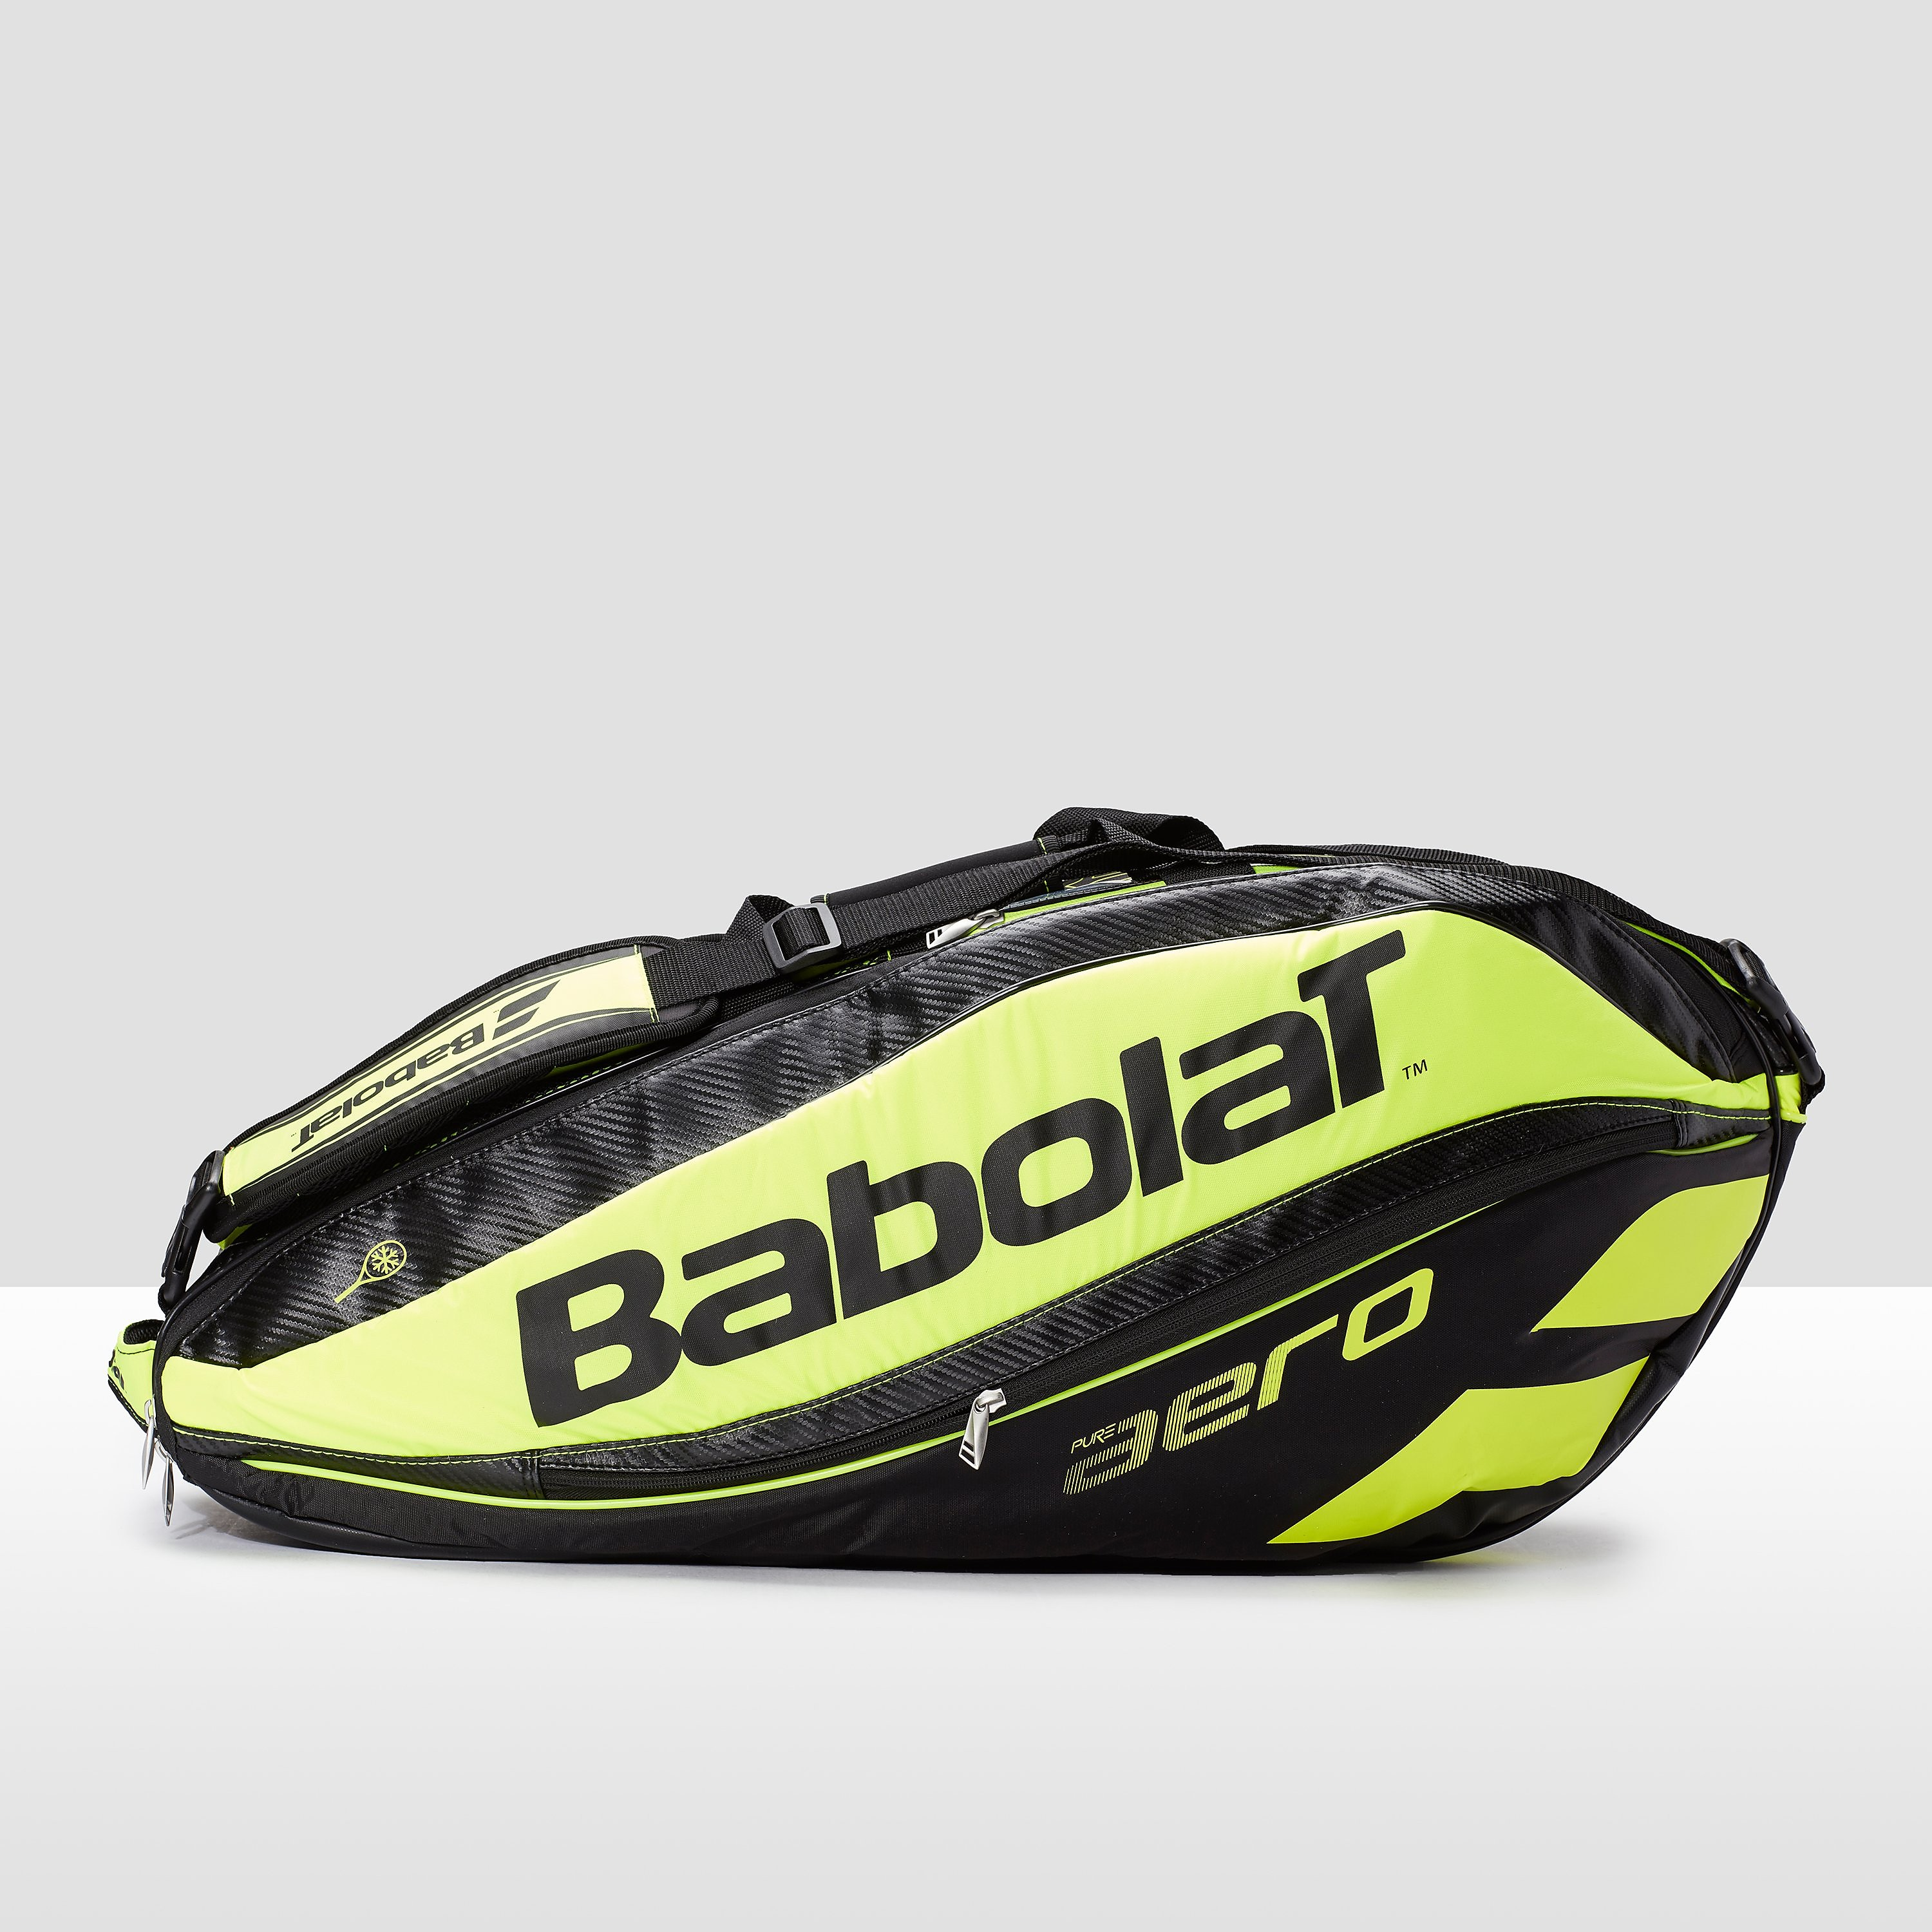 BABOLAT X6 Pure Aero Racket bag